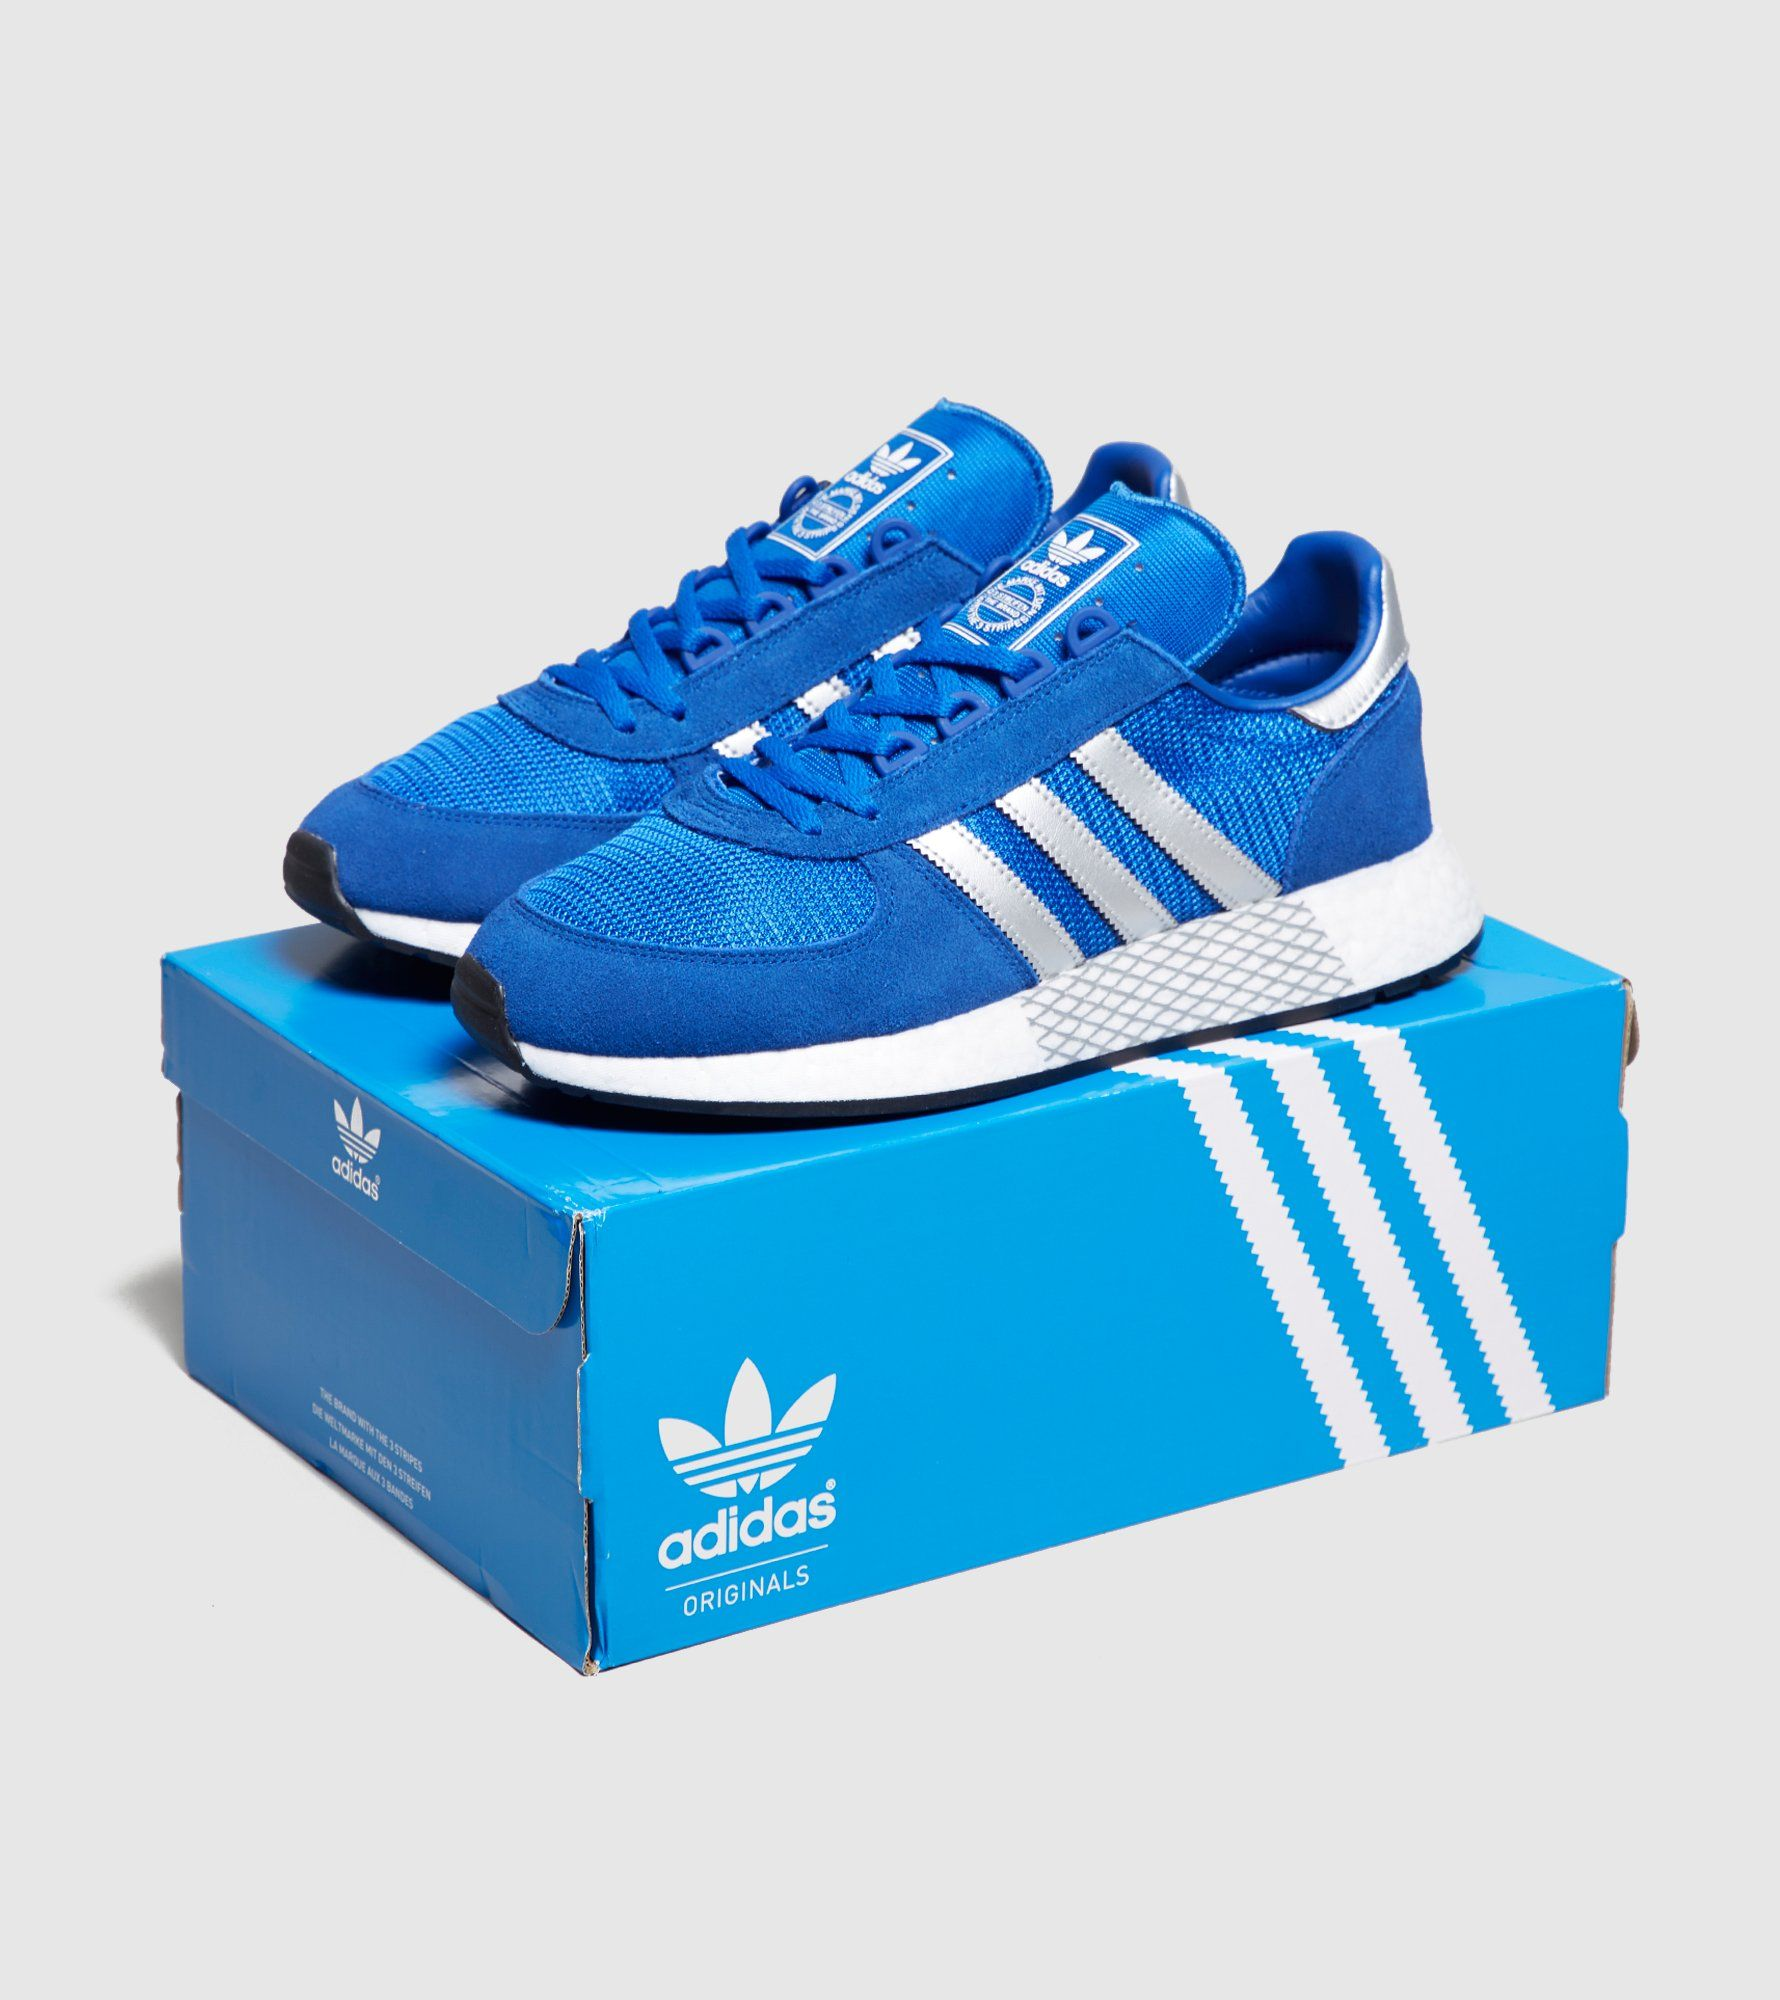 adidas Originals Marathon Boost